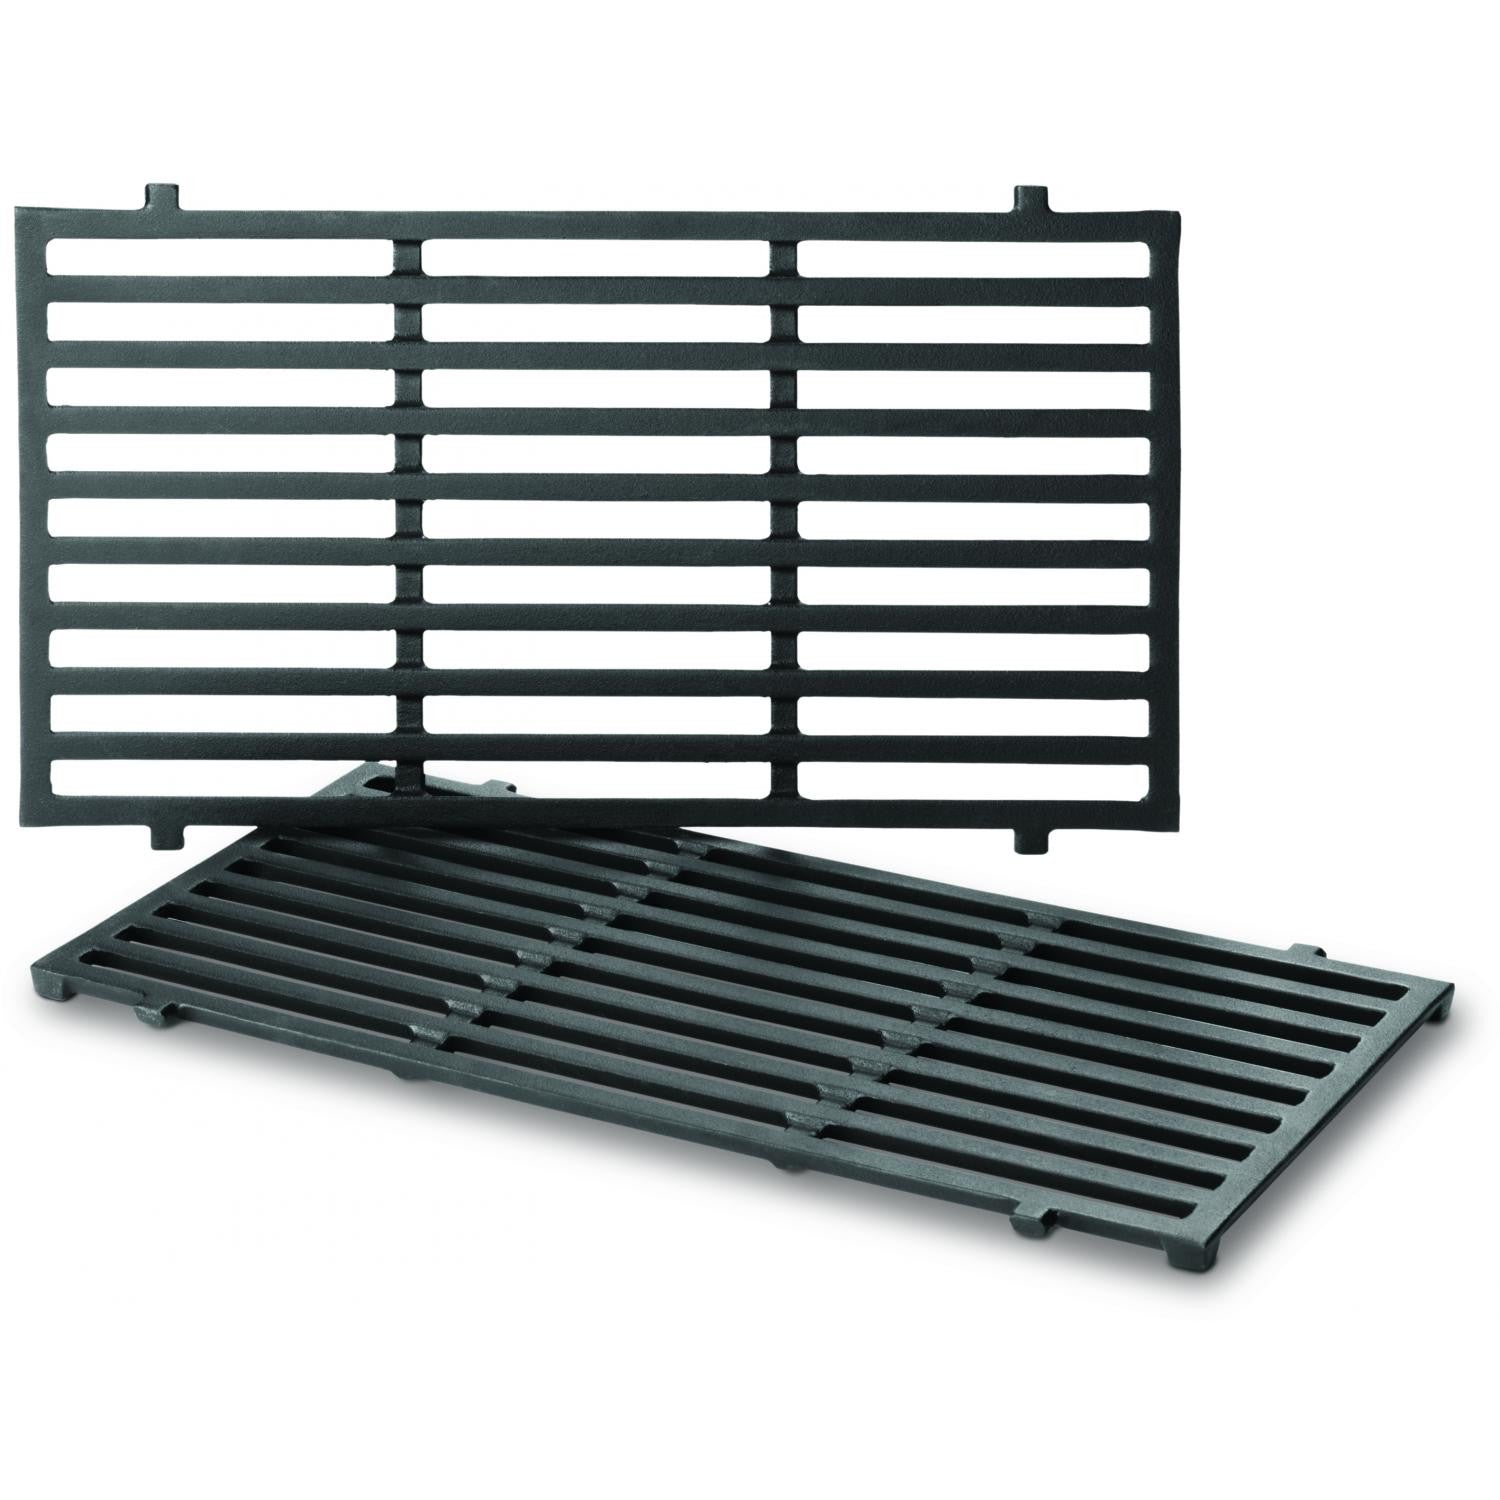 Weber 7637 Porcelain-Enameled Cooking Grates For Spirit 200 Series Gas Grills